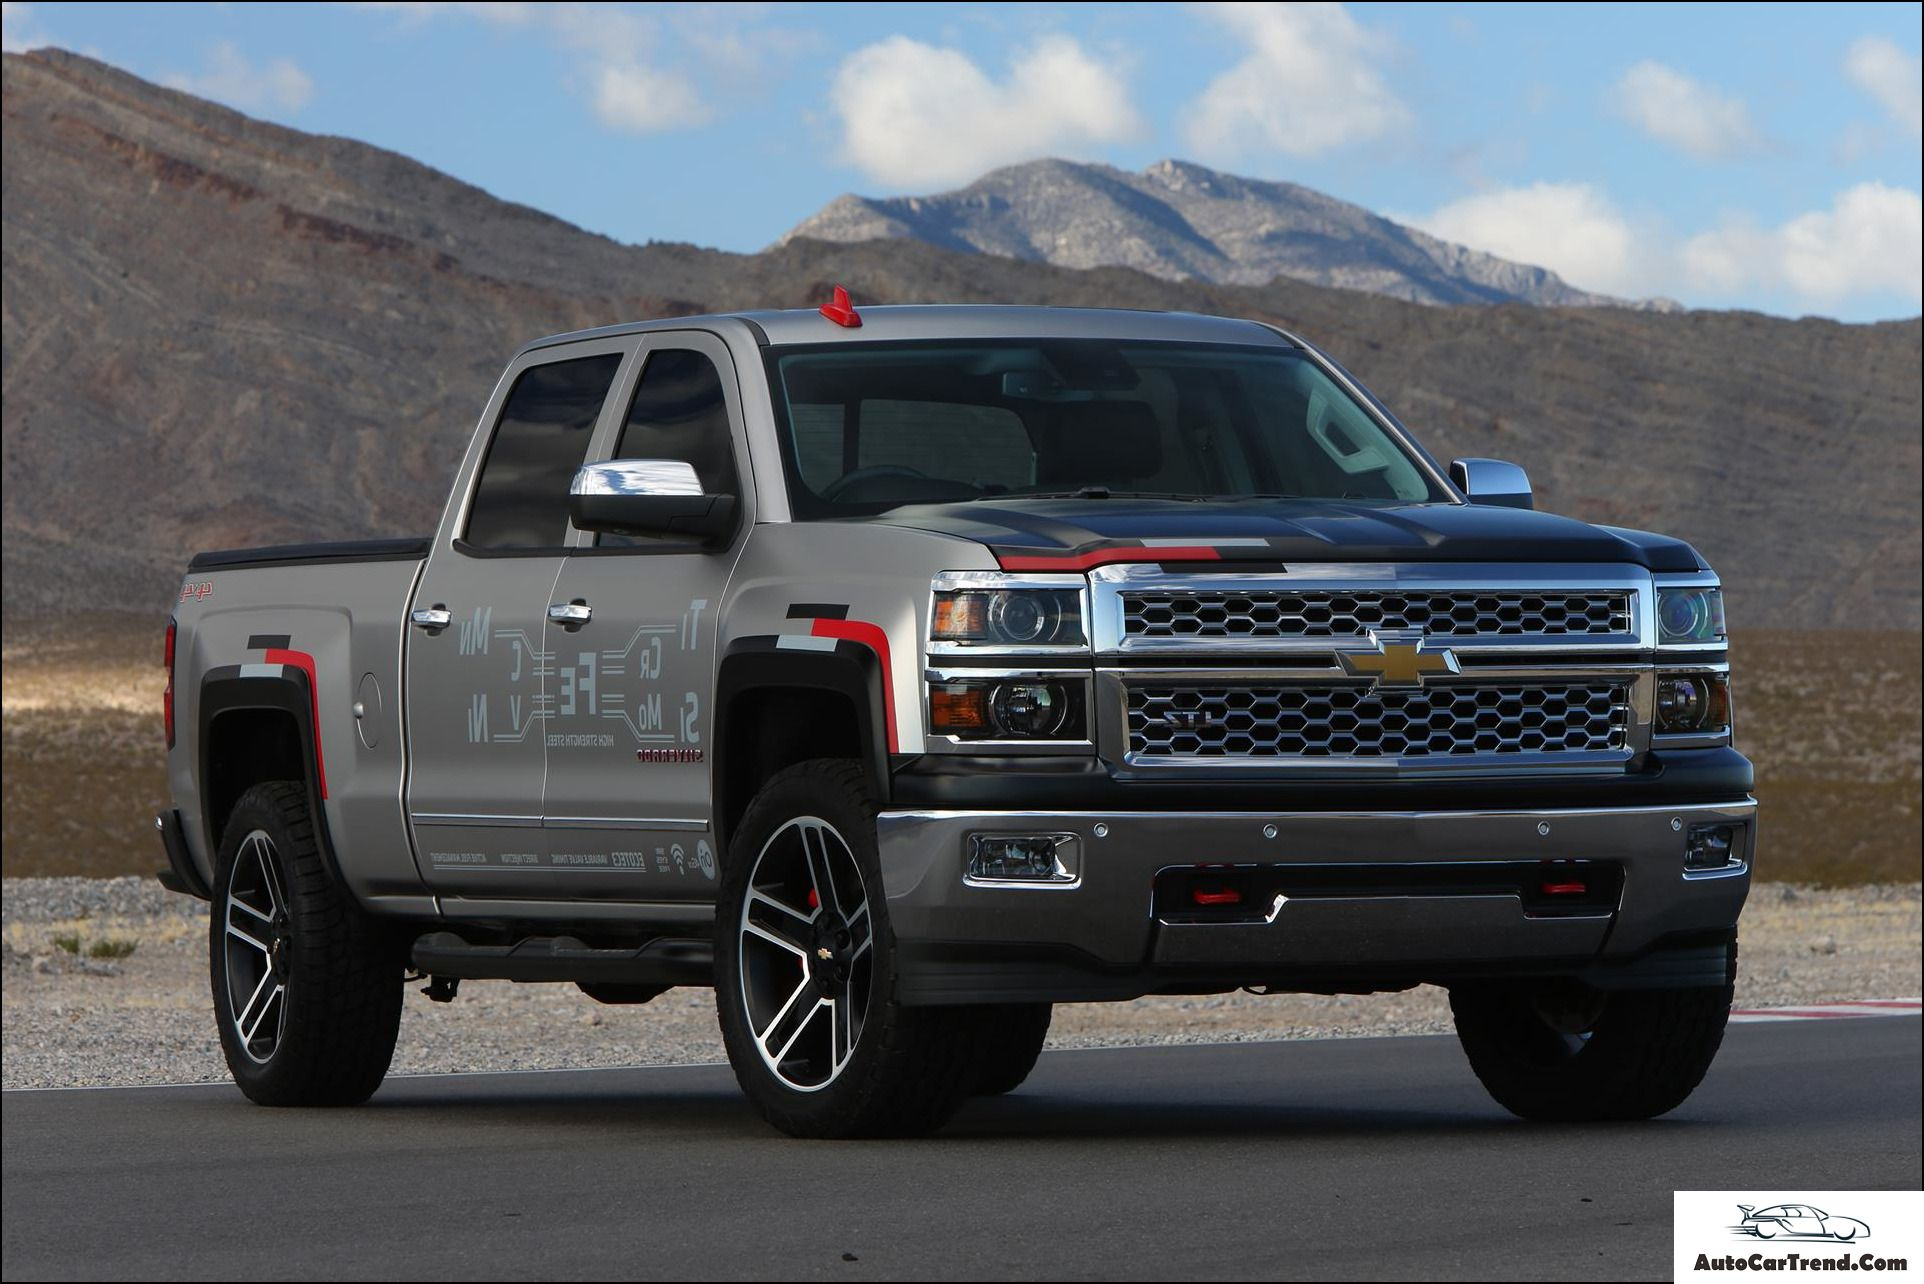 2020 chevy silverado concept price release date 2020 chevy silverado concept is a forthcoming modest truck in line with the rumors every little thing